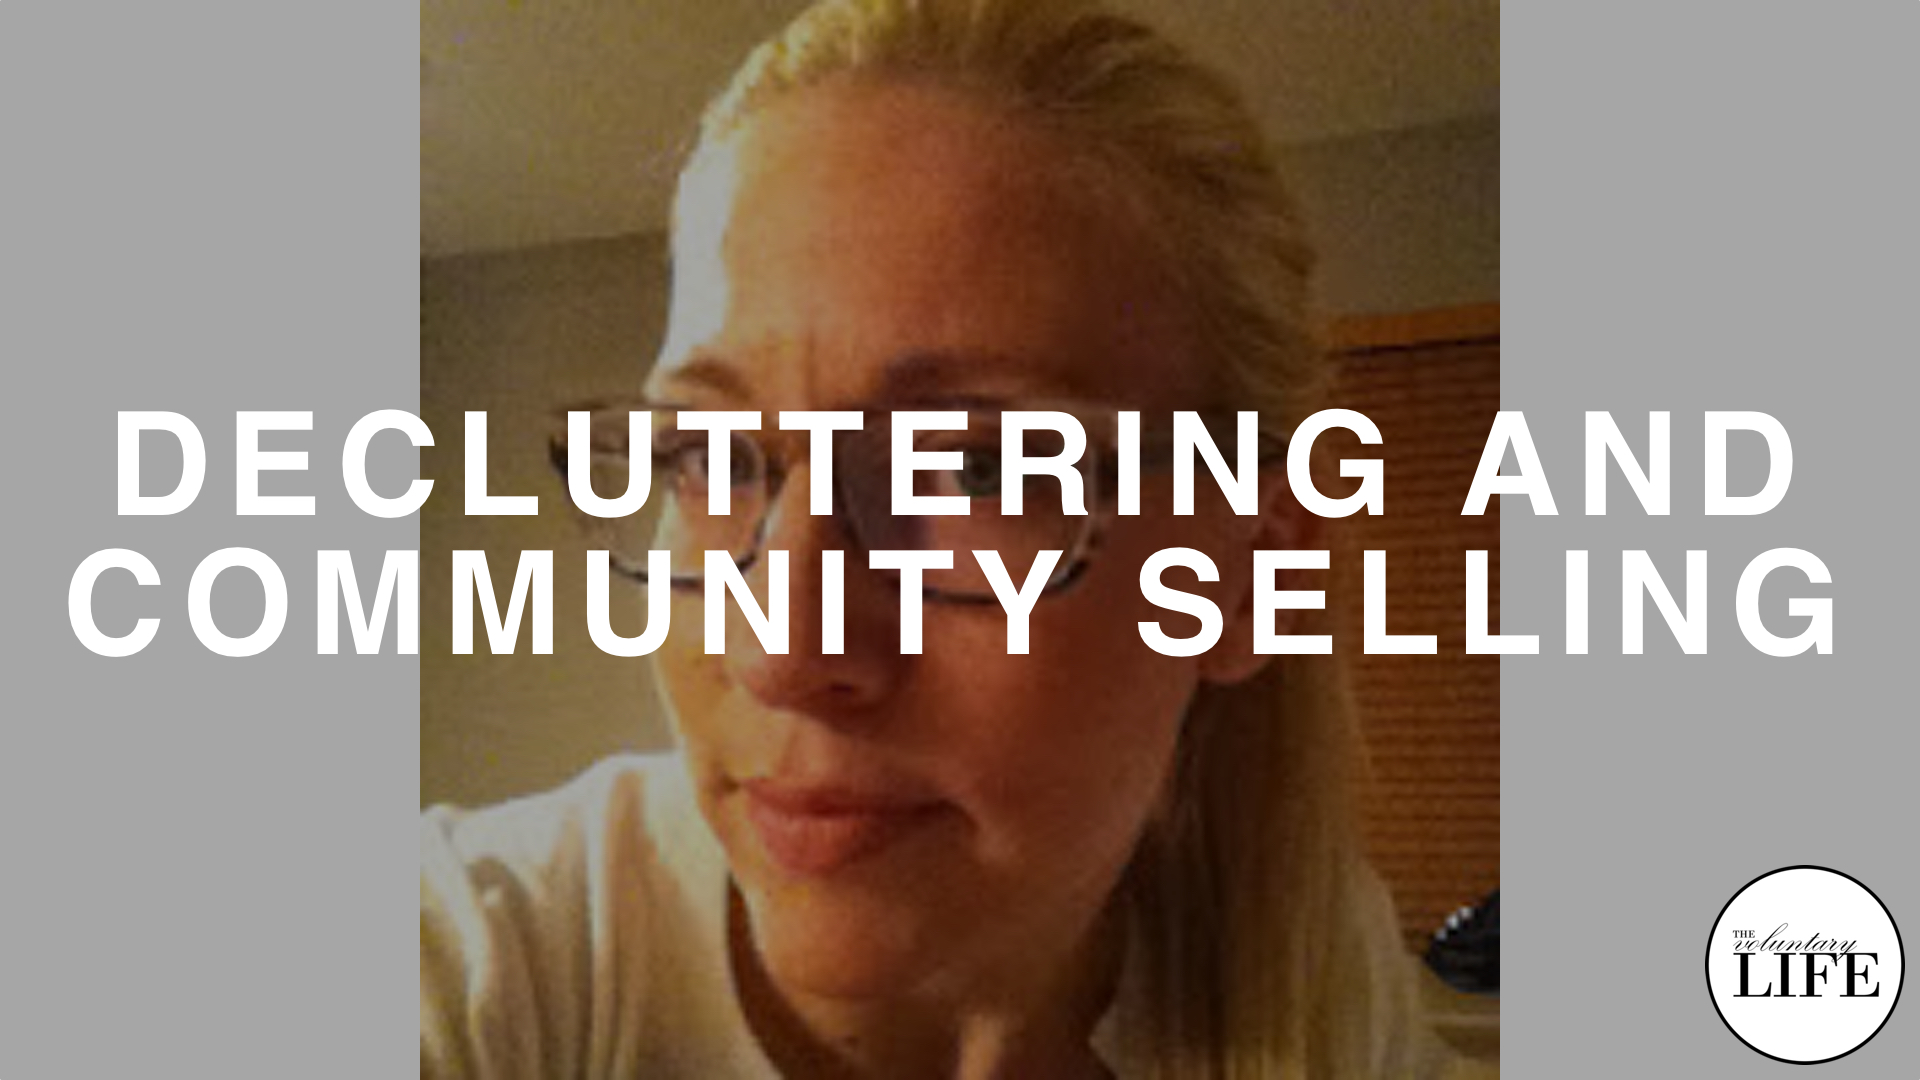 118 Decluttering And Community Selling